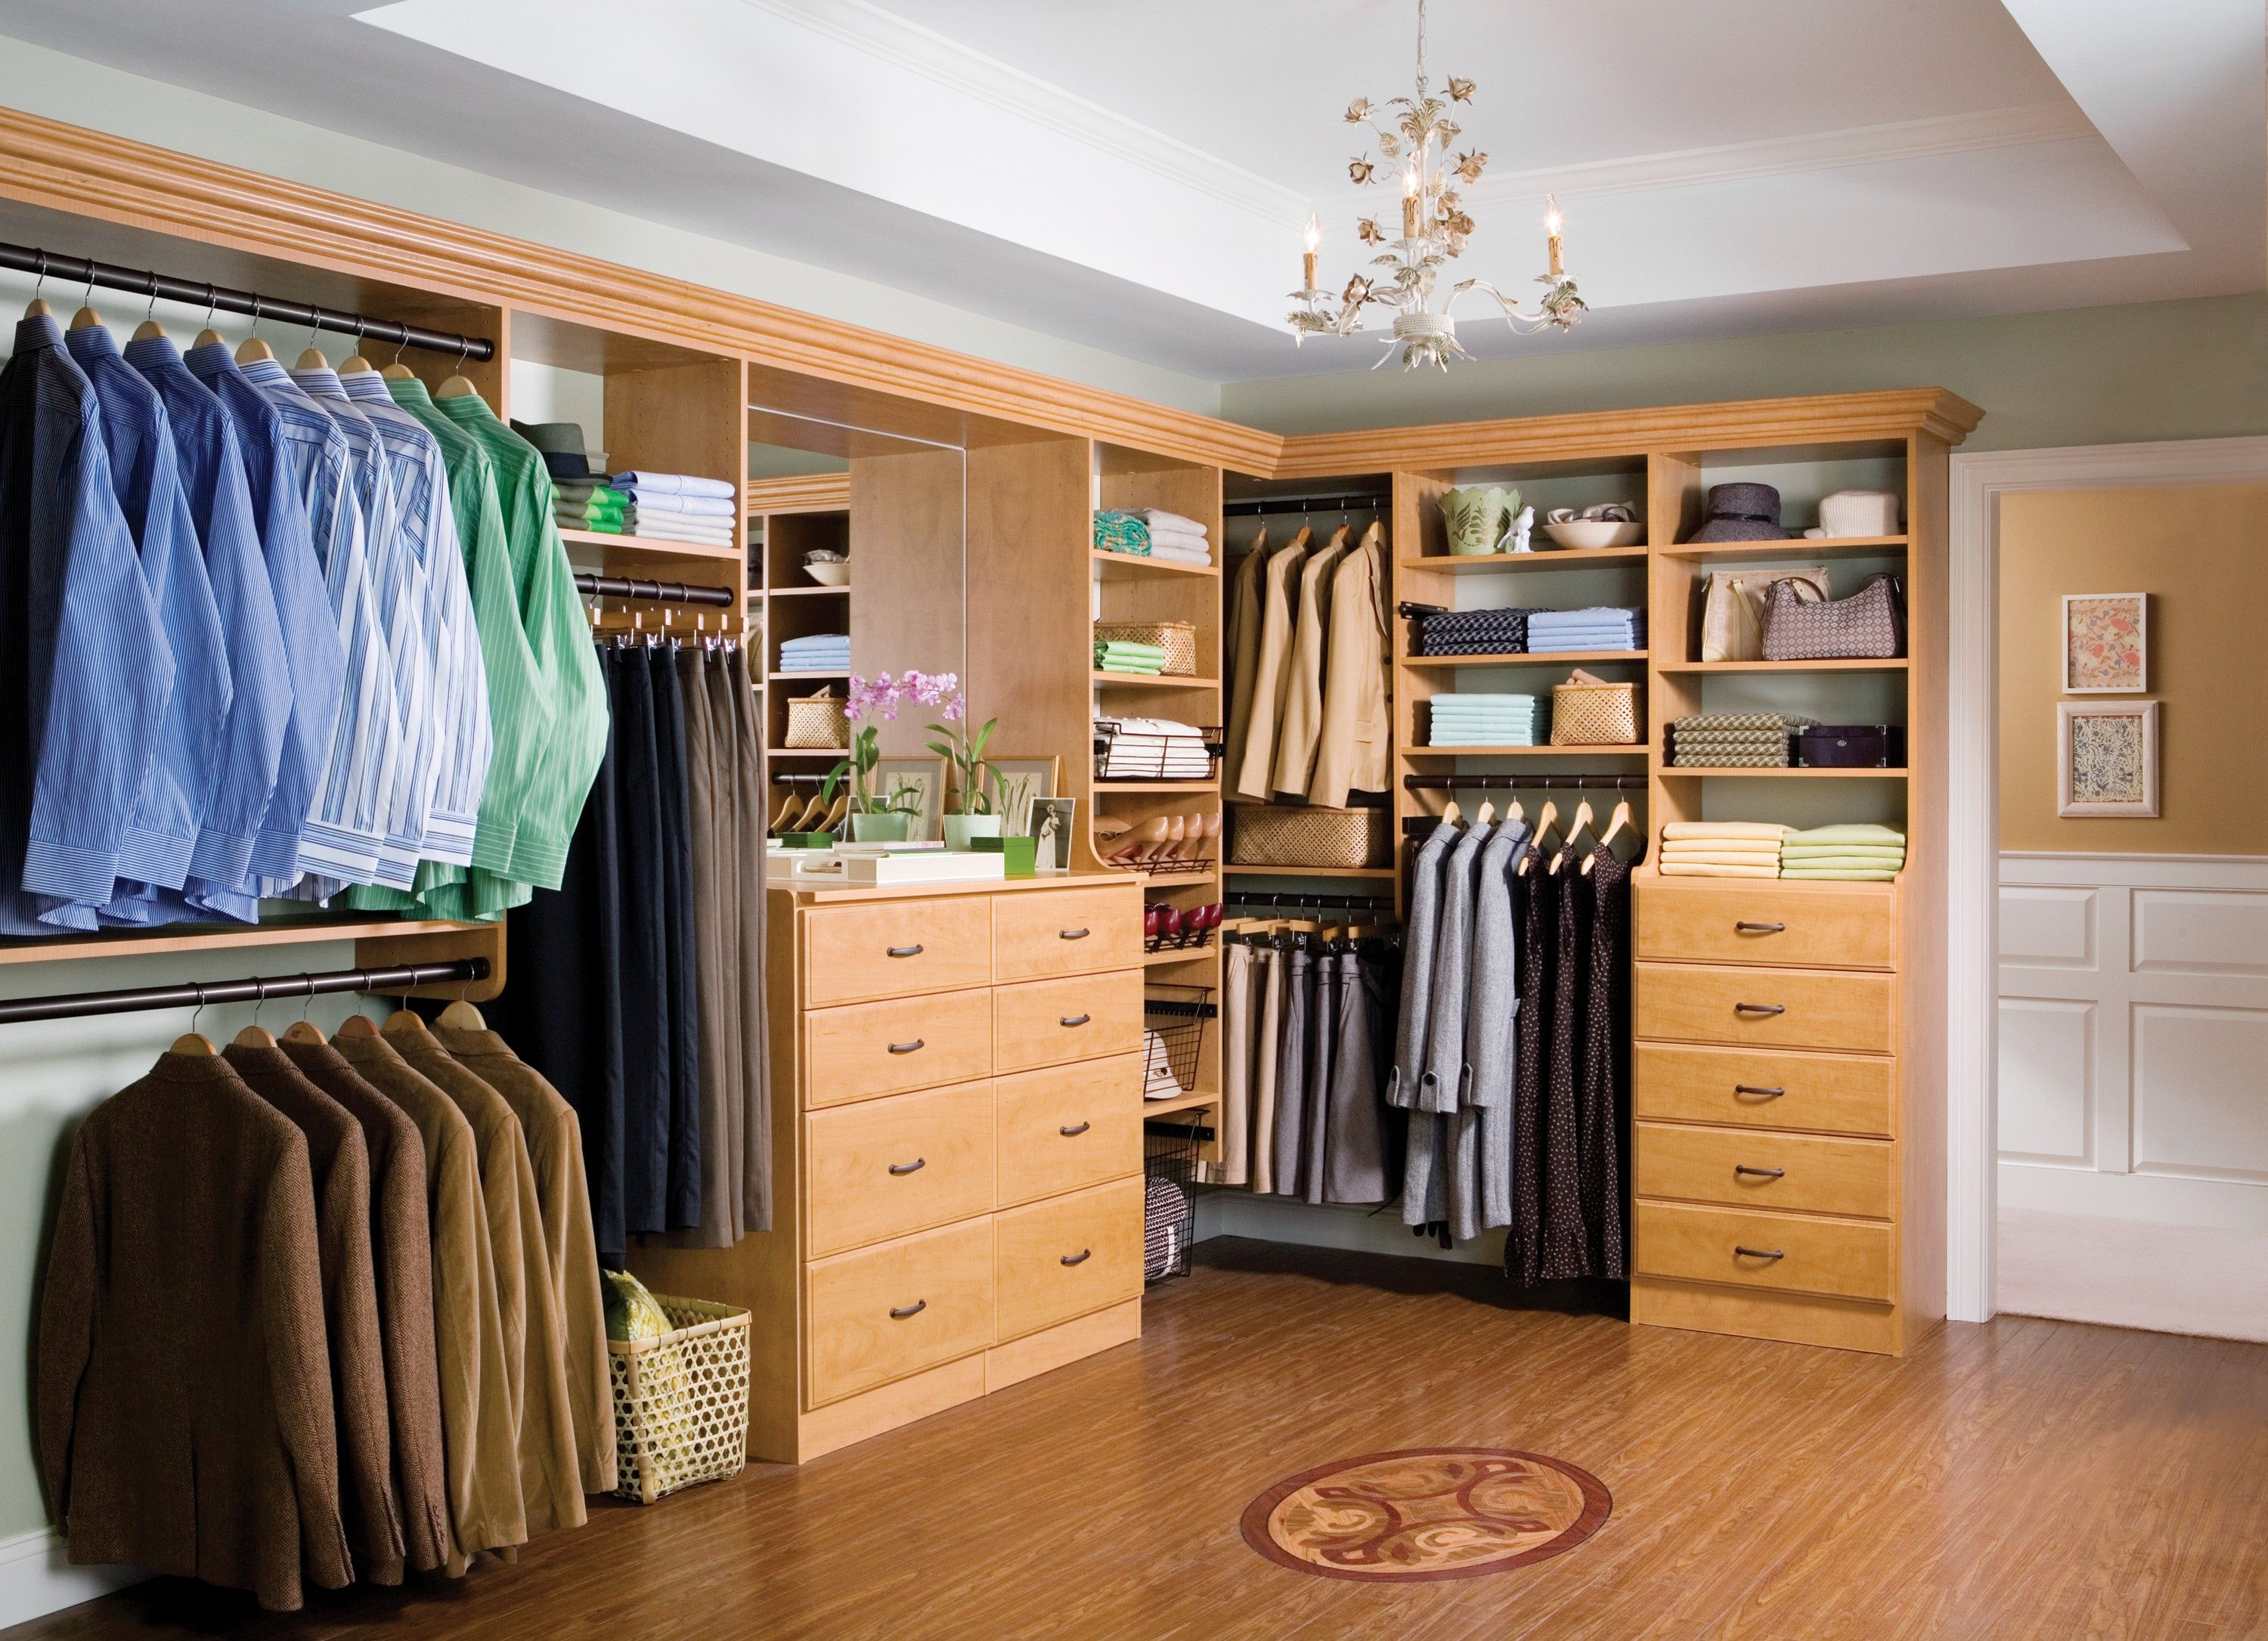 Appealing Large Walk In Closet Designs With Calm Valet Hanger Rods